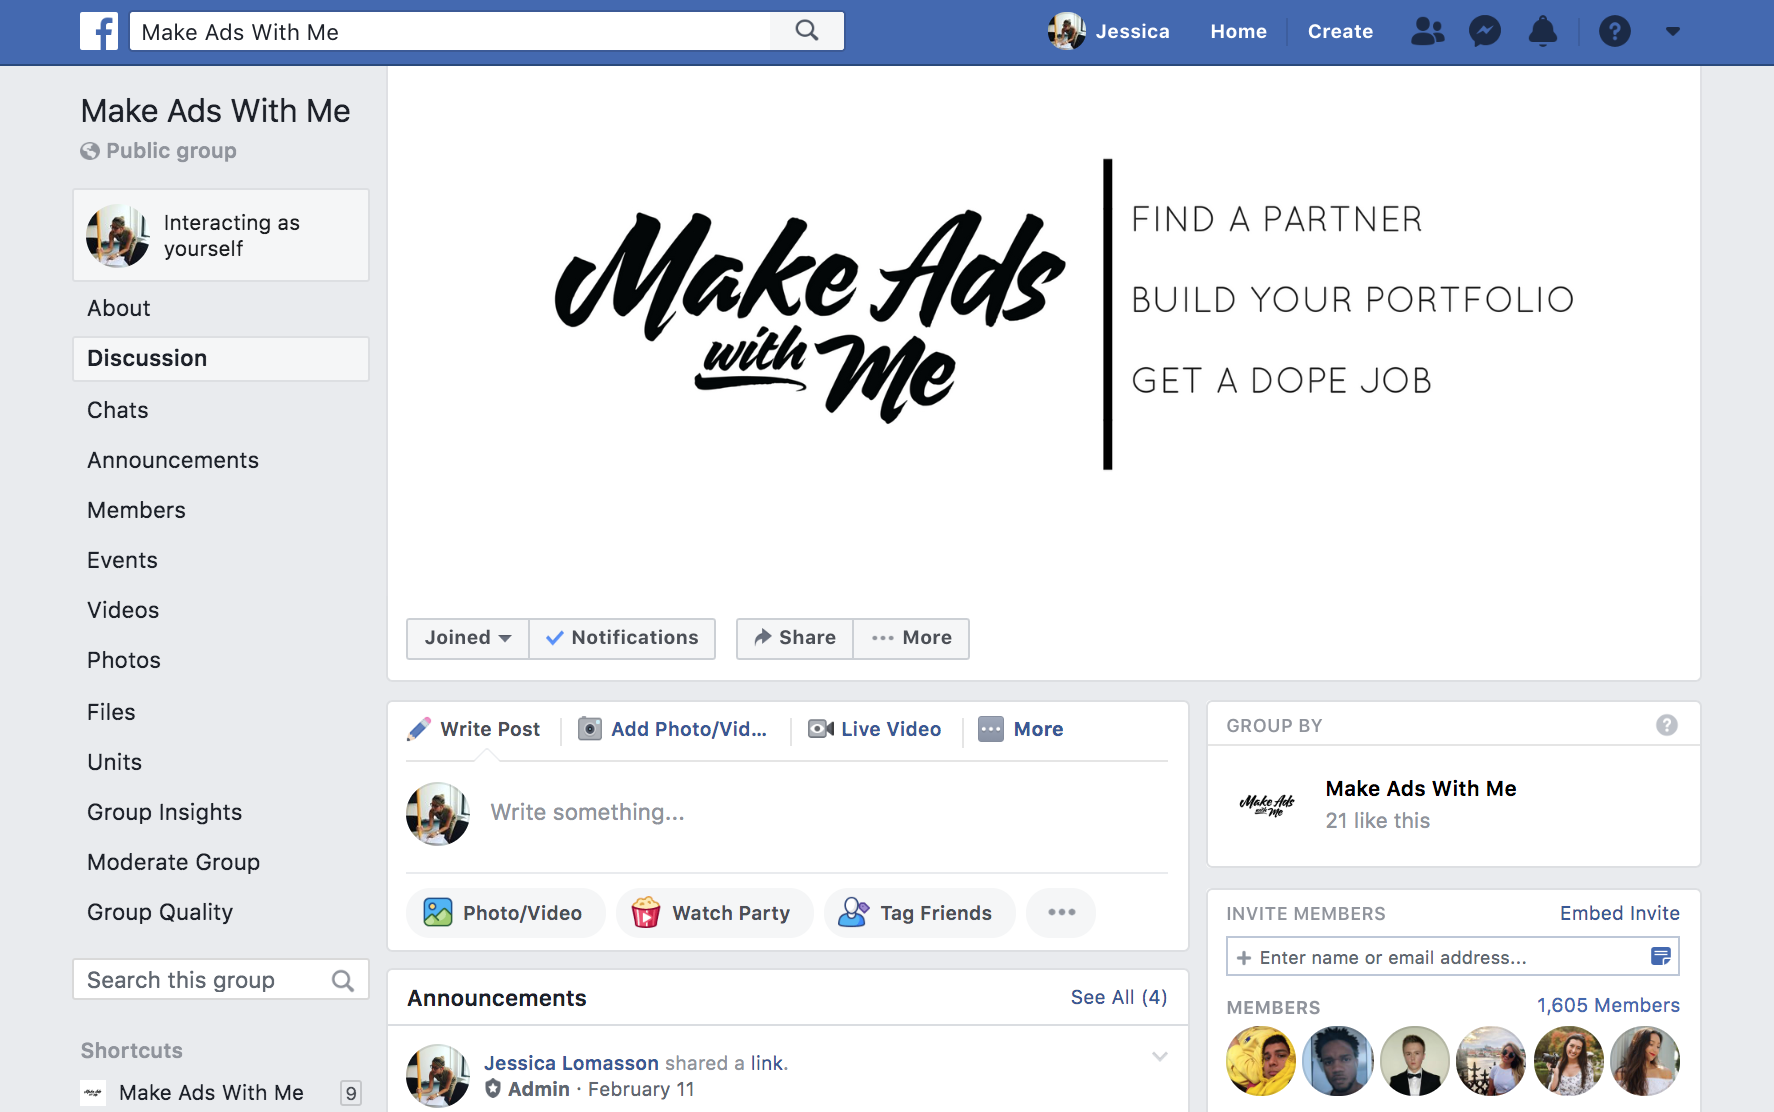 Facebook group of 1600+ members to connect with